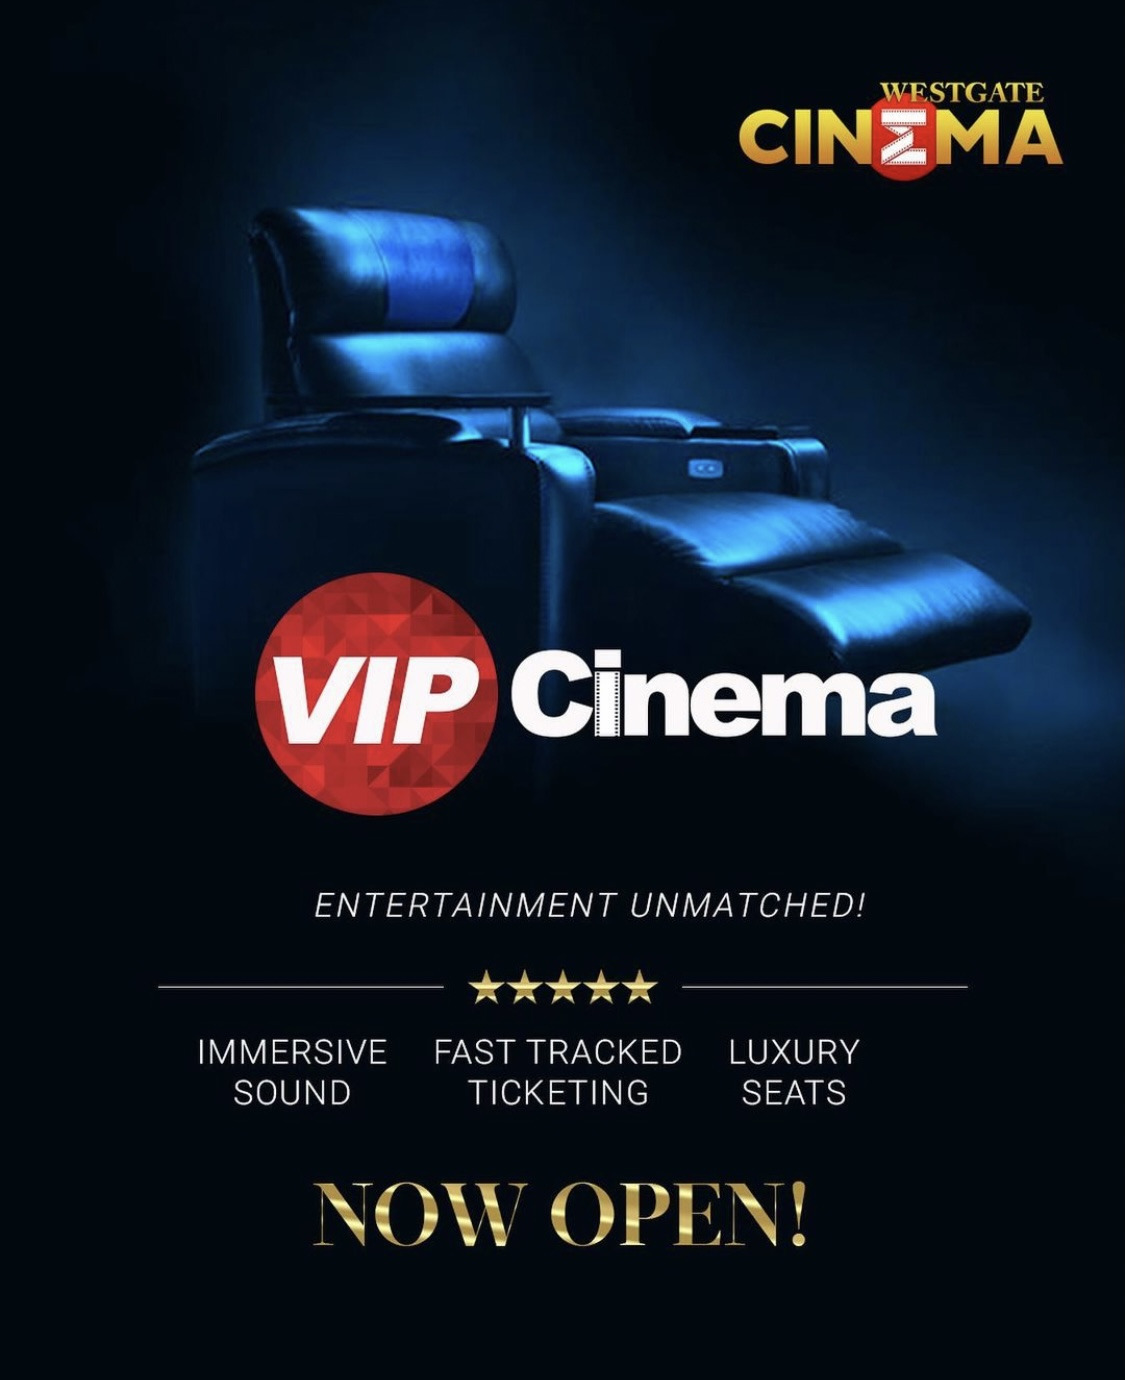 IS THE WESTGATE VIP CINEMA REALLY WORTH THE HYPE?